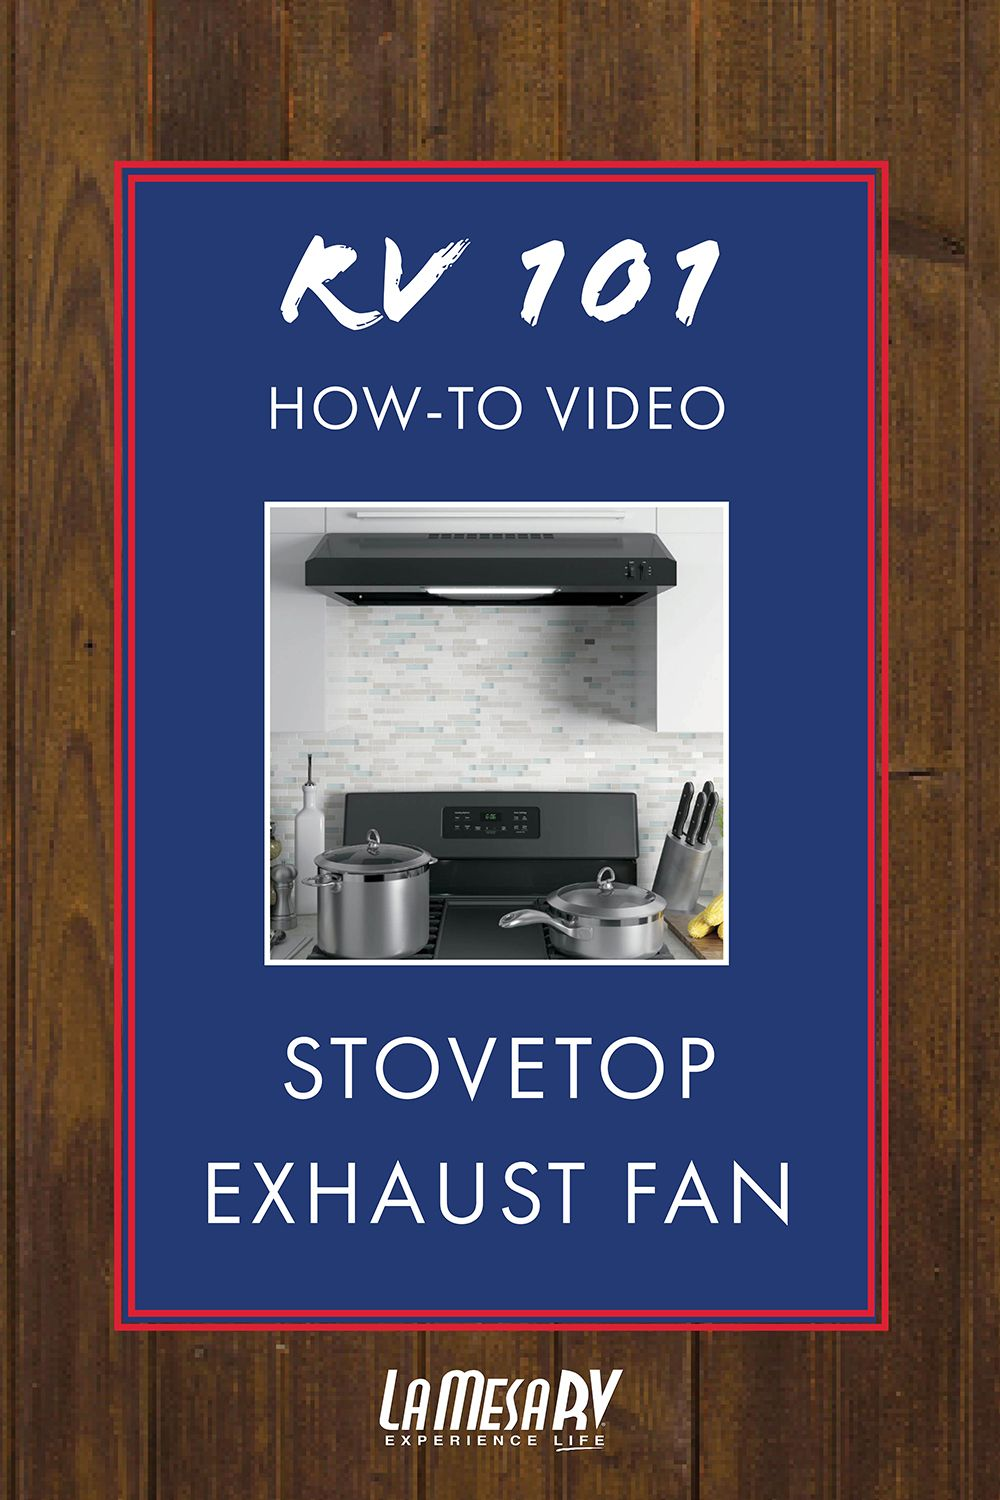 In Order For Your Stovetop Exhaust Fan To Work Properly Make Sure Your 12v System Is Engaged The System Comes With An Exhaus Exhaust Fan Exhausted Stove Top